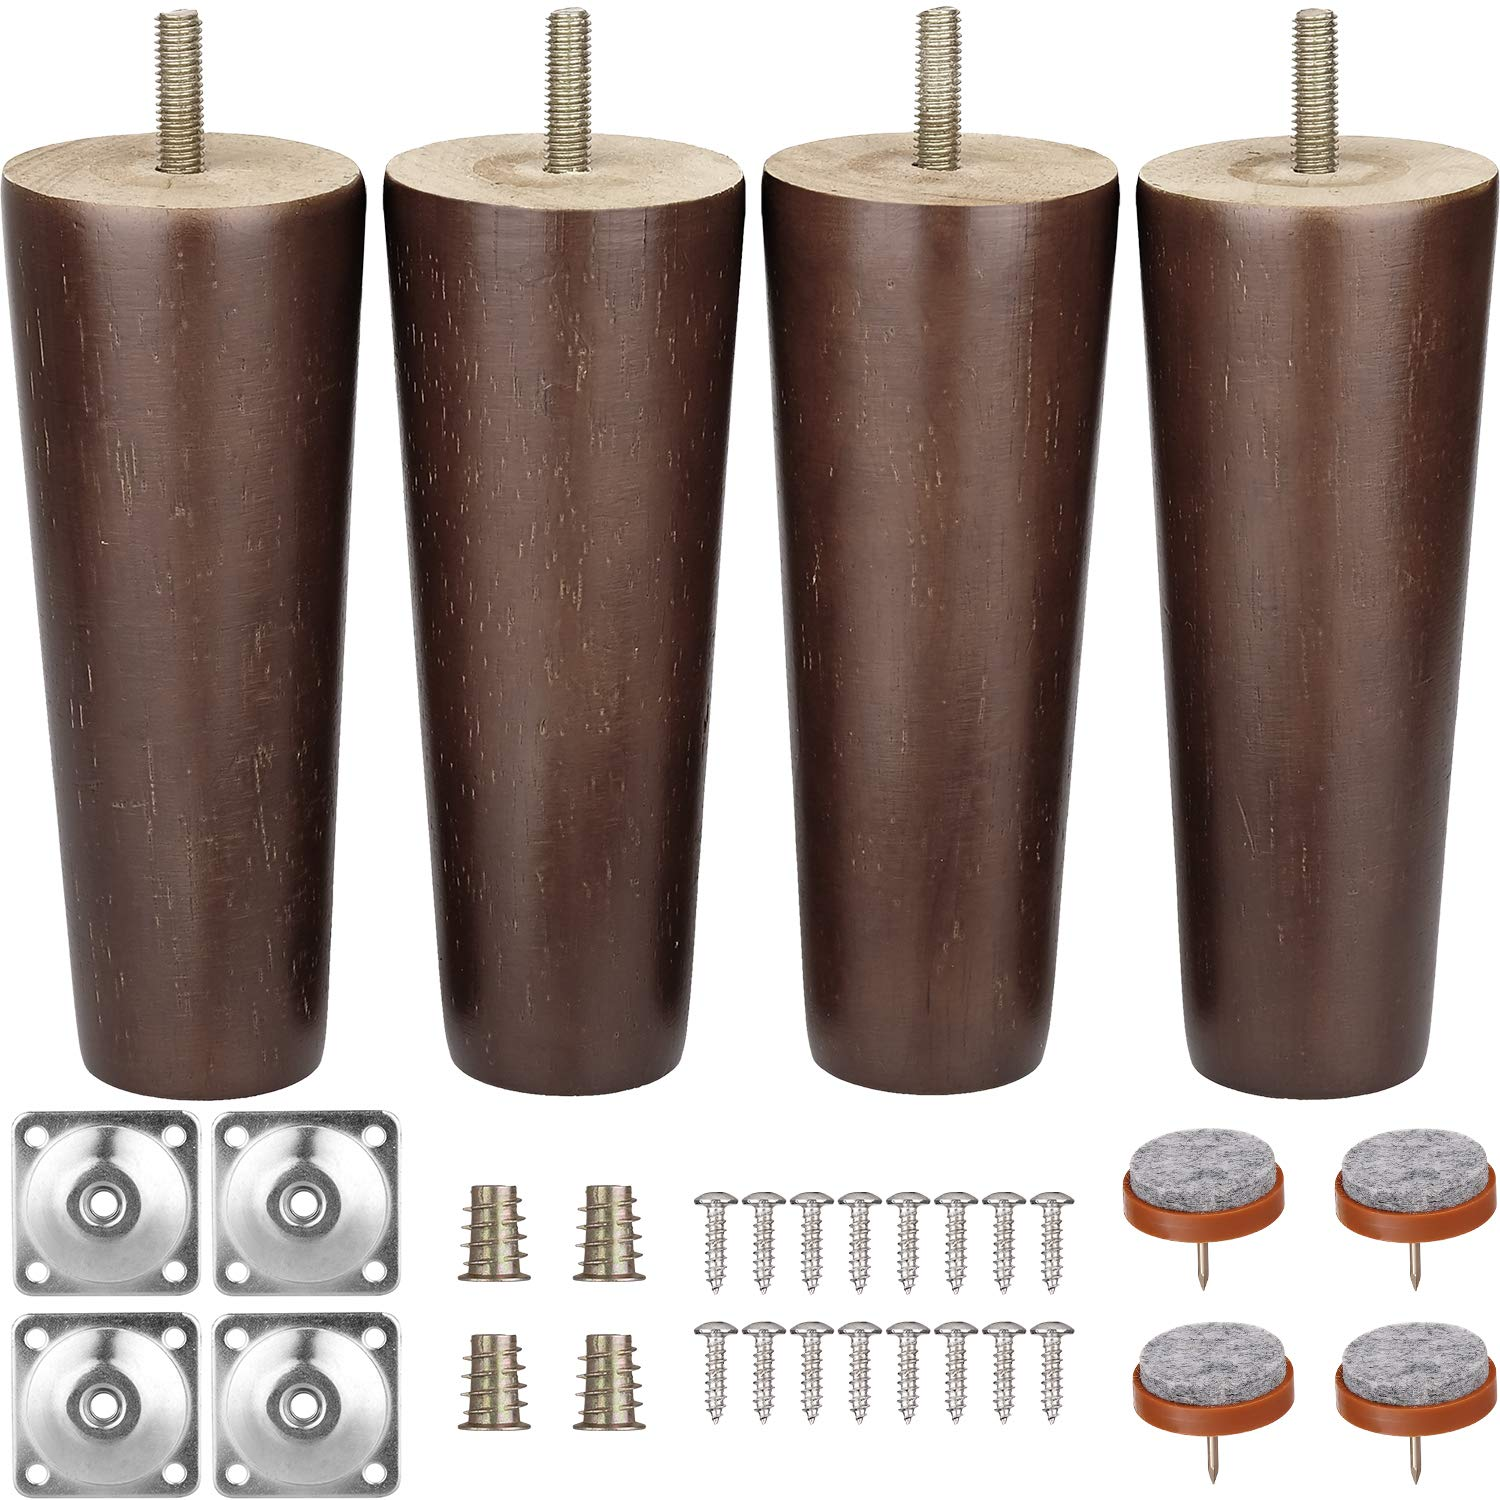 Furniture Legs 6 Inches Sofa Legs Mid Century Modern Walnut Wood Furniture Feet Replacement Legswith Leg Mounting Plates & Felt Protectors for Sofa Cabinet Couch Ottoman Coffee Table Bench Chair